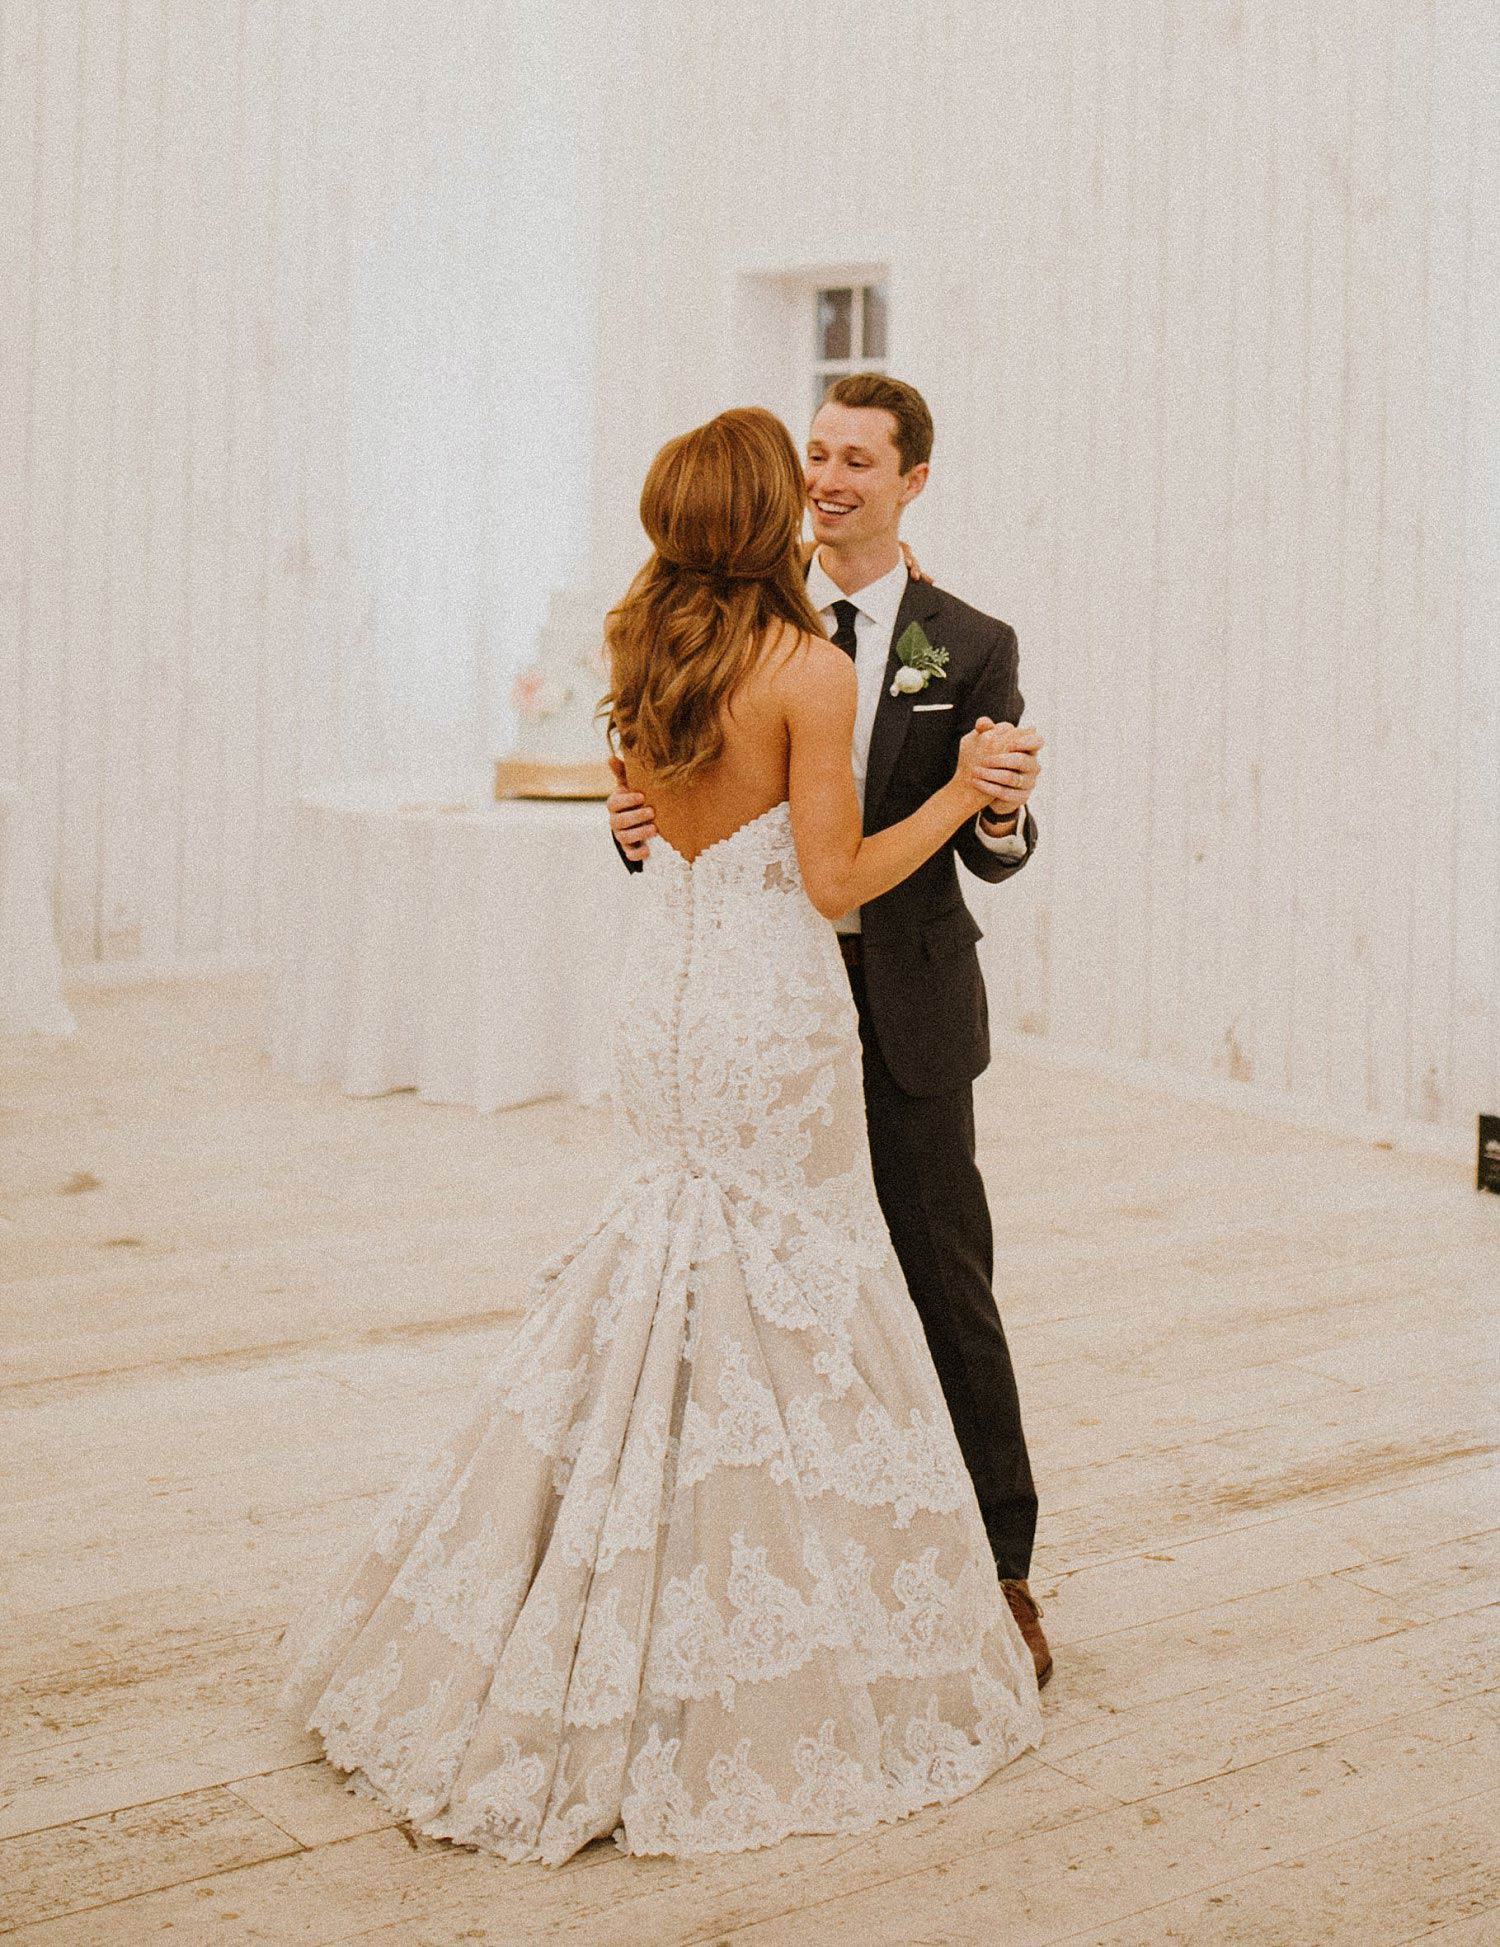 Bride wearing nude and lace dress while dancing with groom